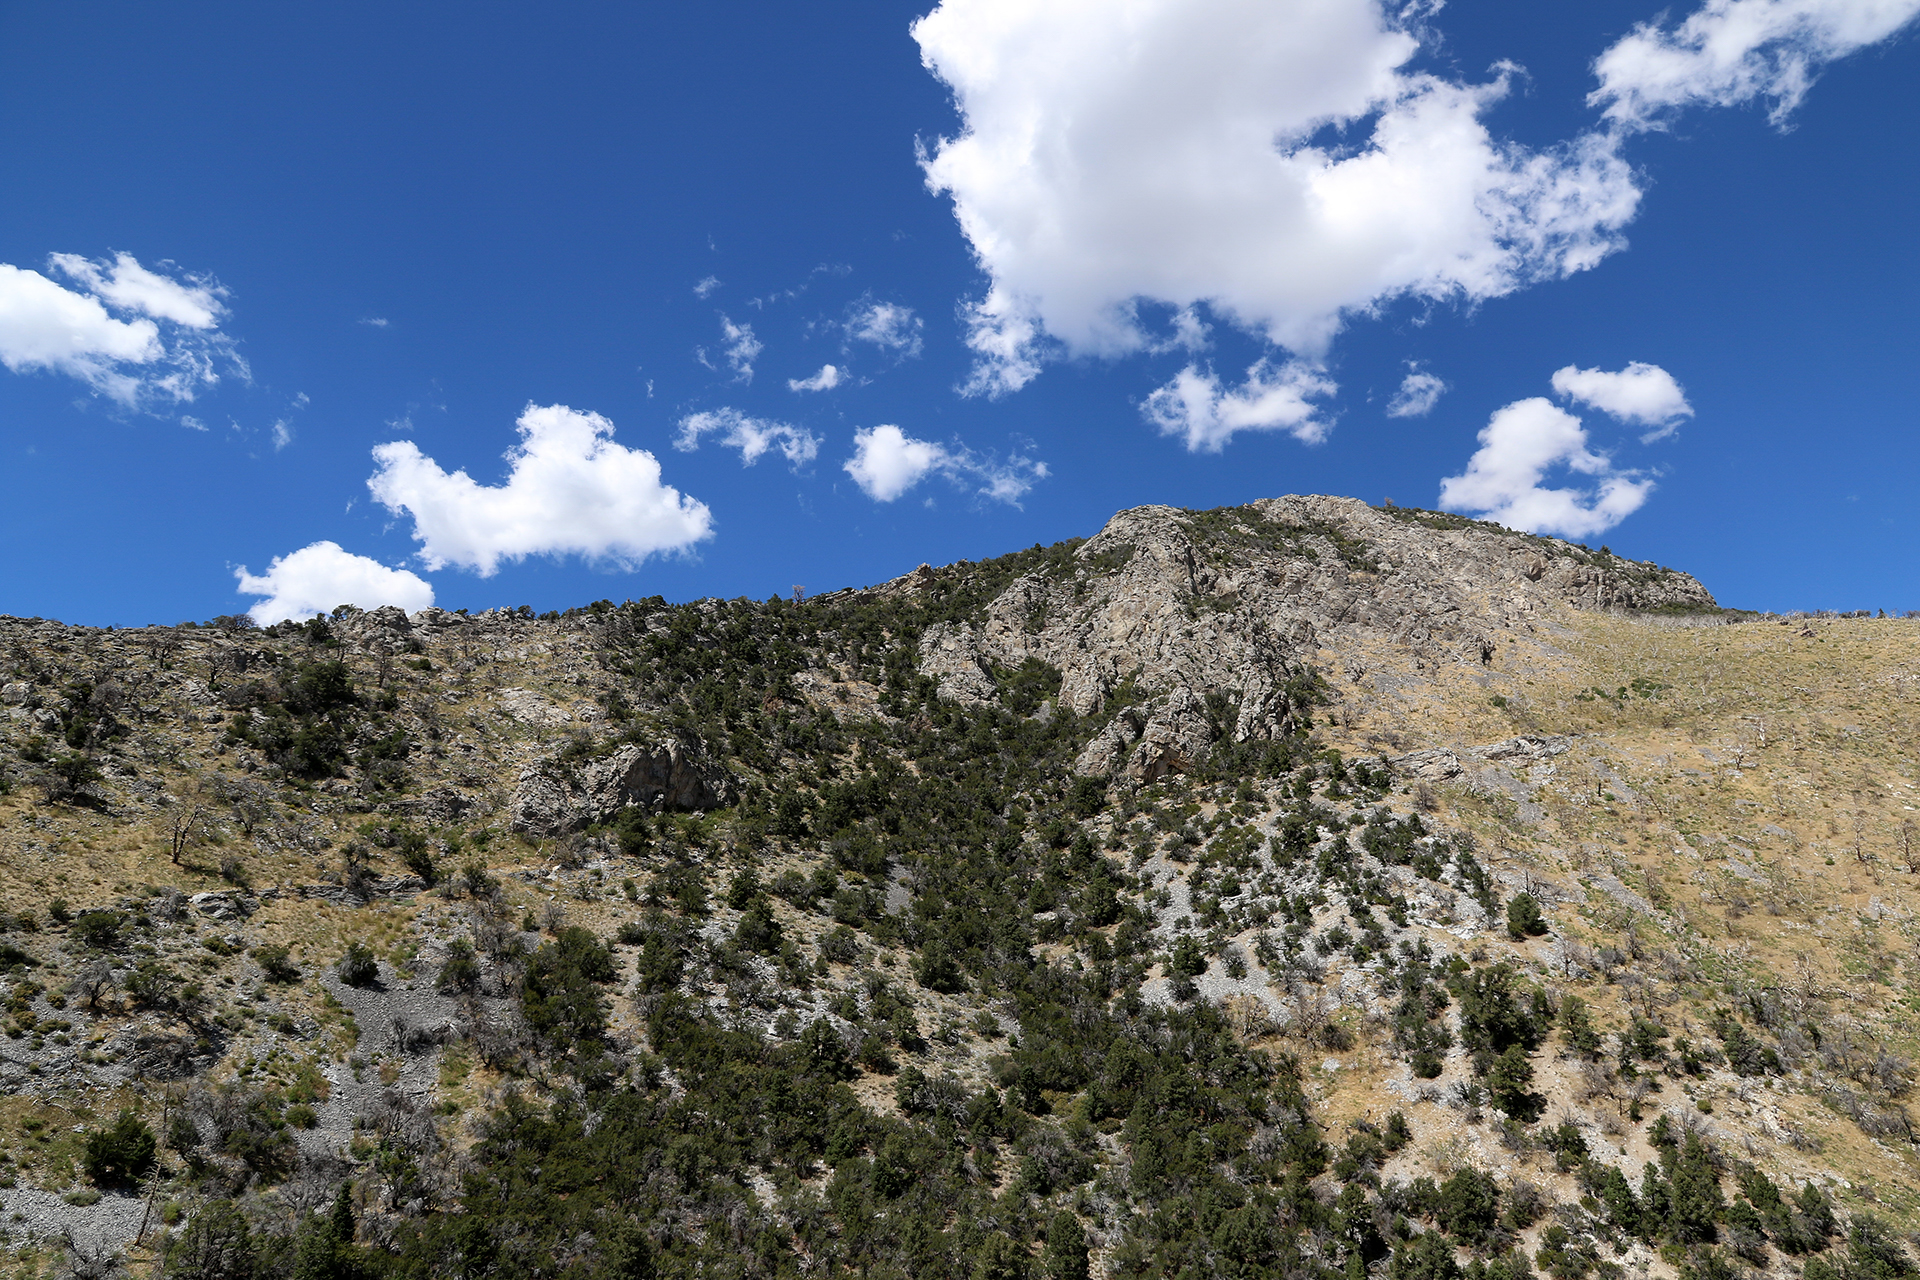 GreatBasin-479